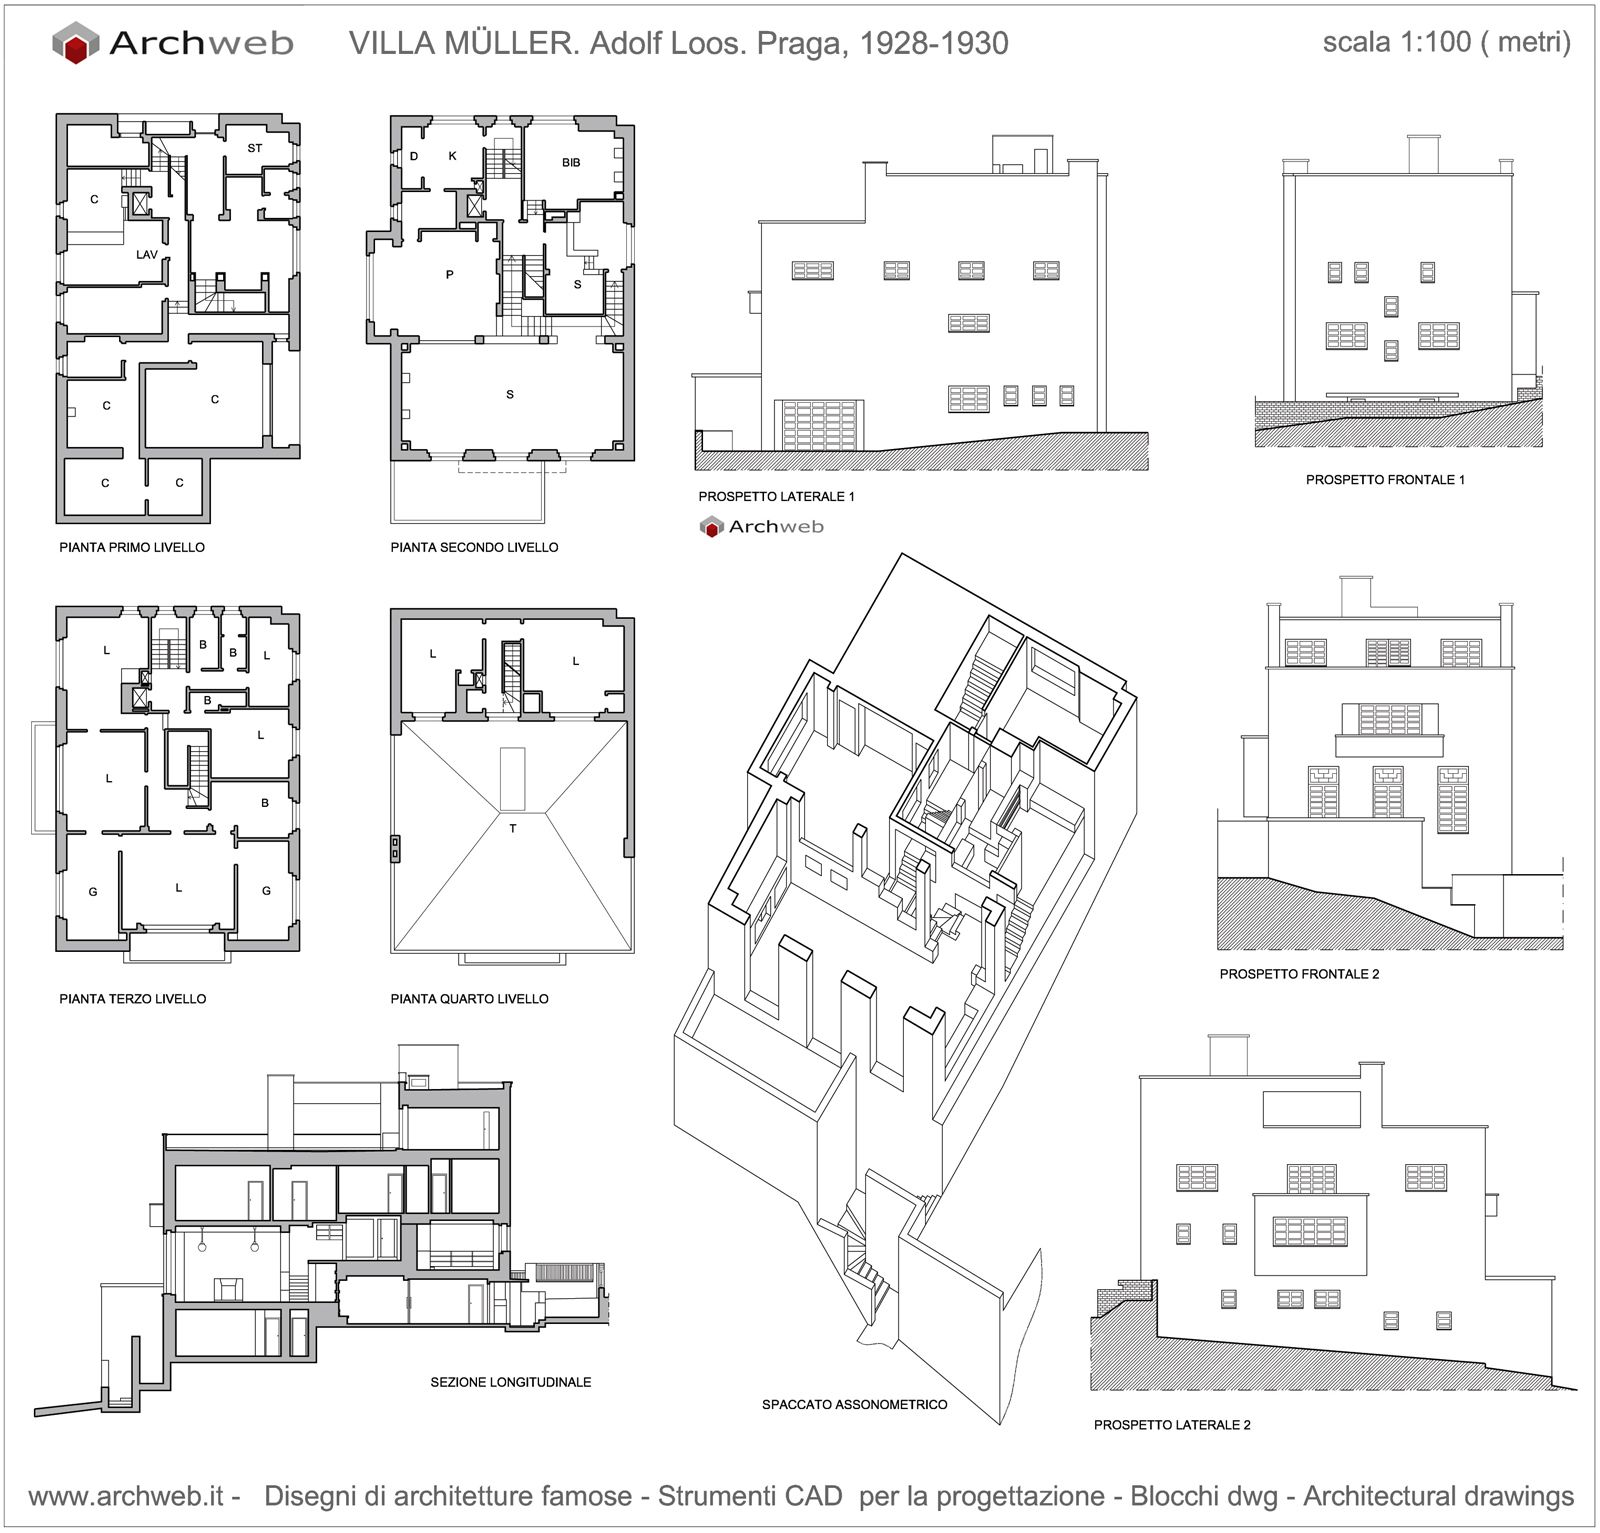 Casa muller plan drawings adolf loos pinterest for Archweb piante